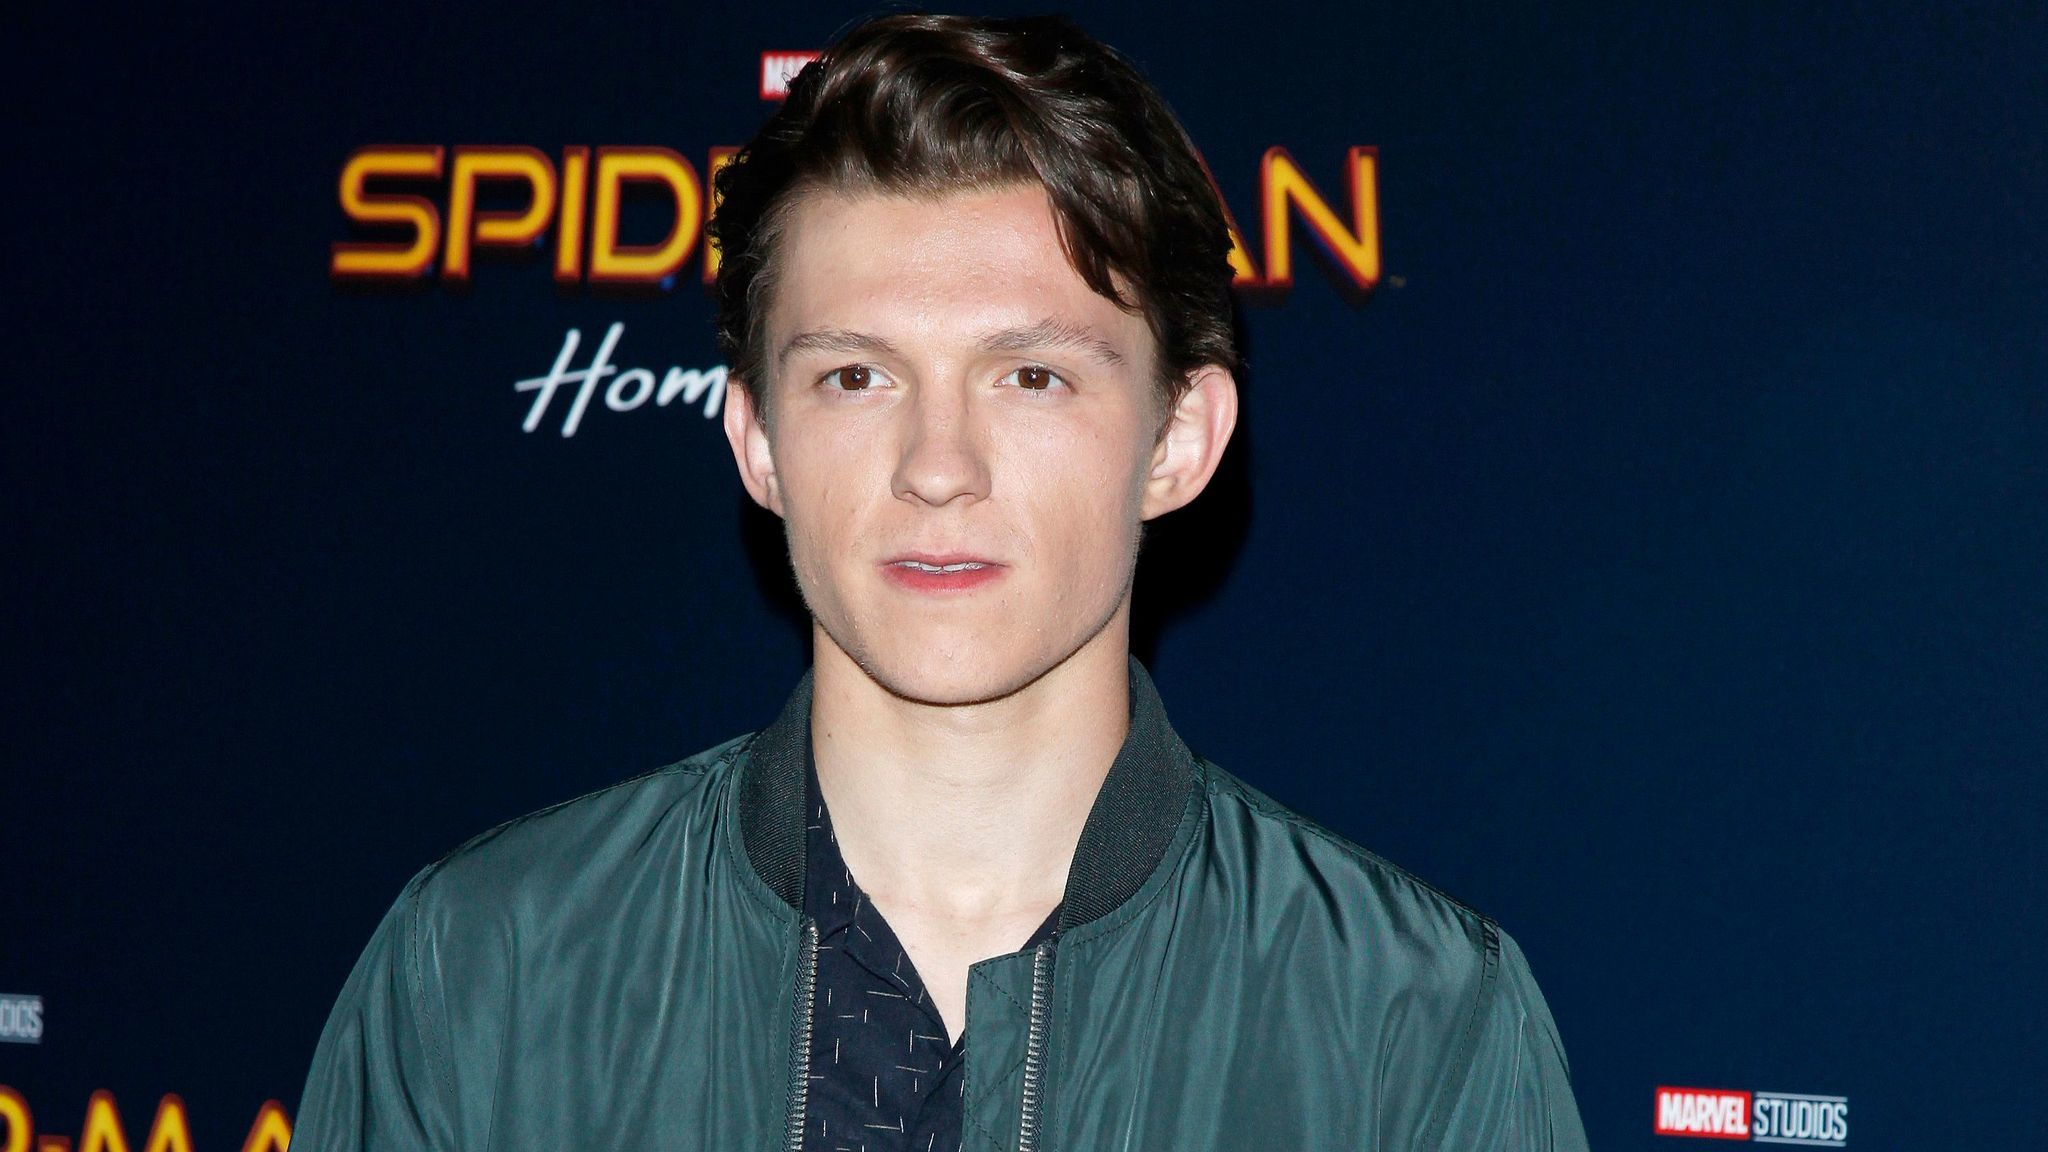 """Tom Holland, who stars in the forthcoming """"Spider-Man: Homecoming,"""" appears backstage at the Sony Pictures Entertainment presentation at CinemaCon 2017 last month at Caesars Palace in Las Vegas."""